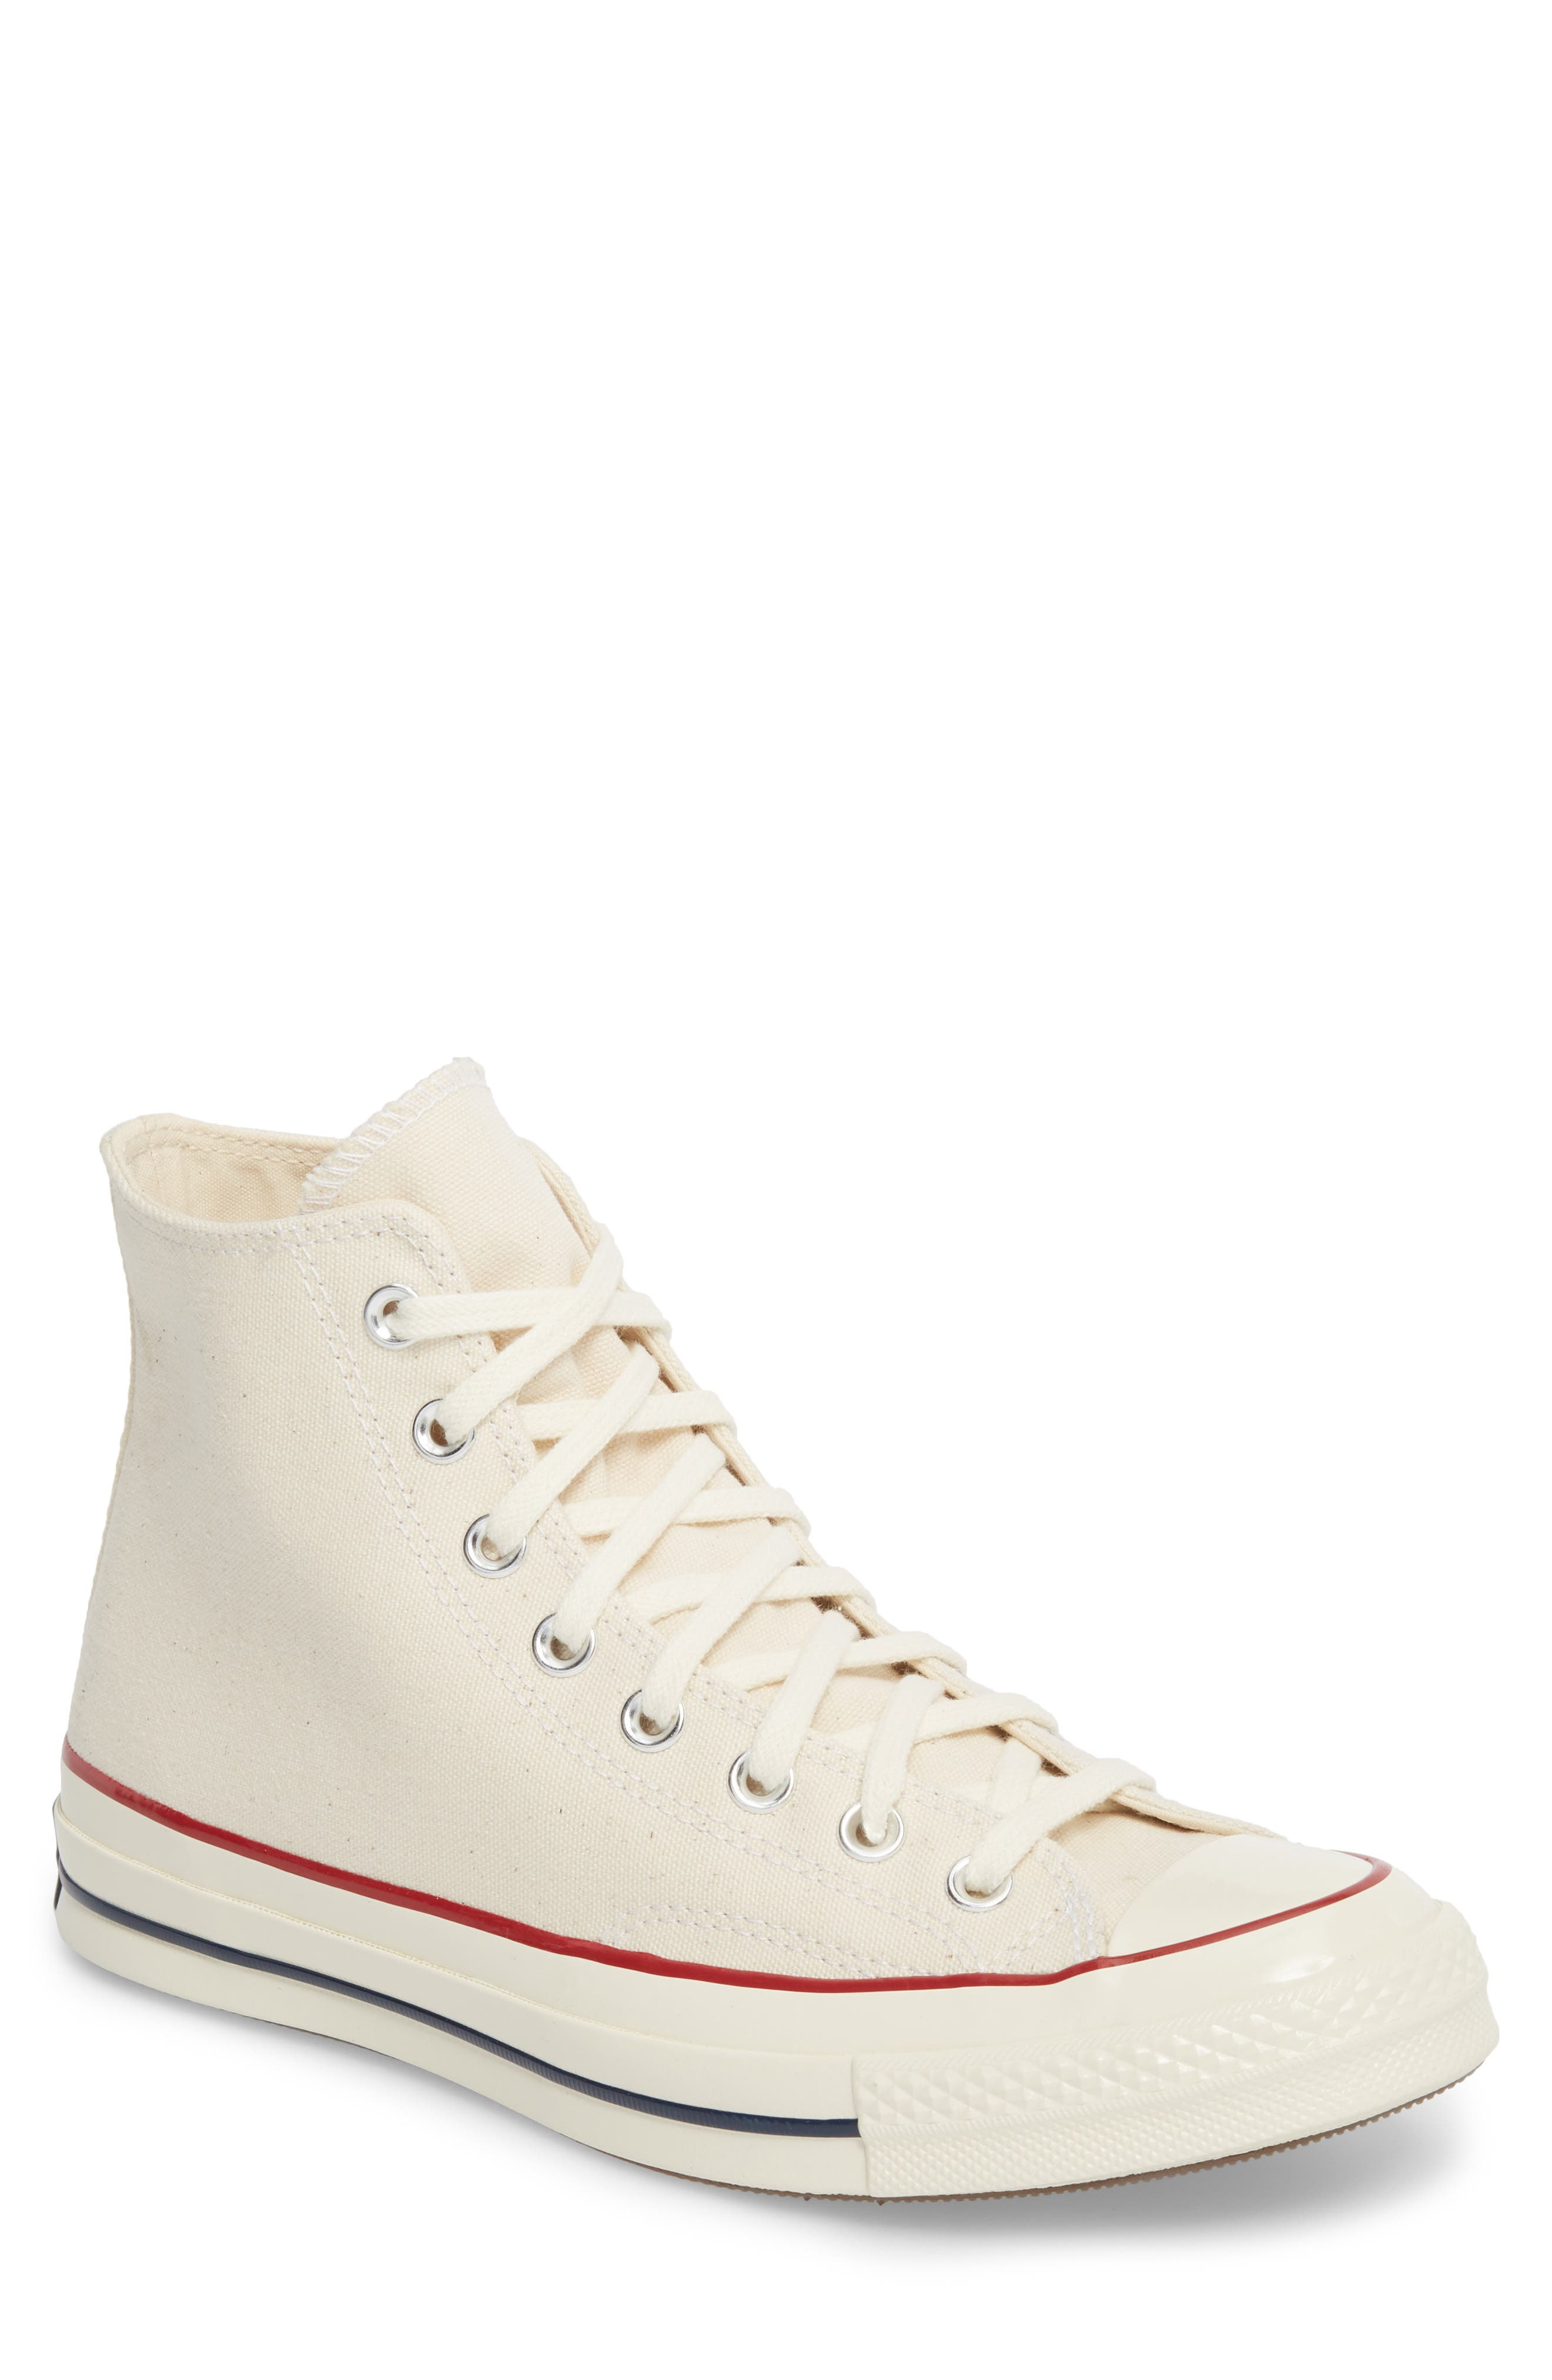 Chuck Taylor<sup>®</sup> All Star<sup>®</sup> 70 High Top Sneaker,                             Main thumbnail 1, color,                             Parchment